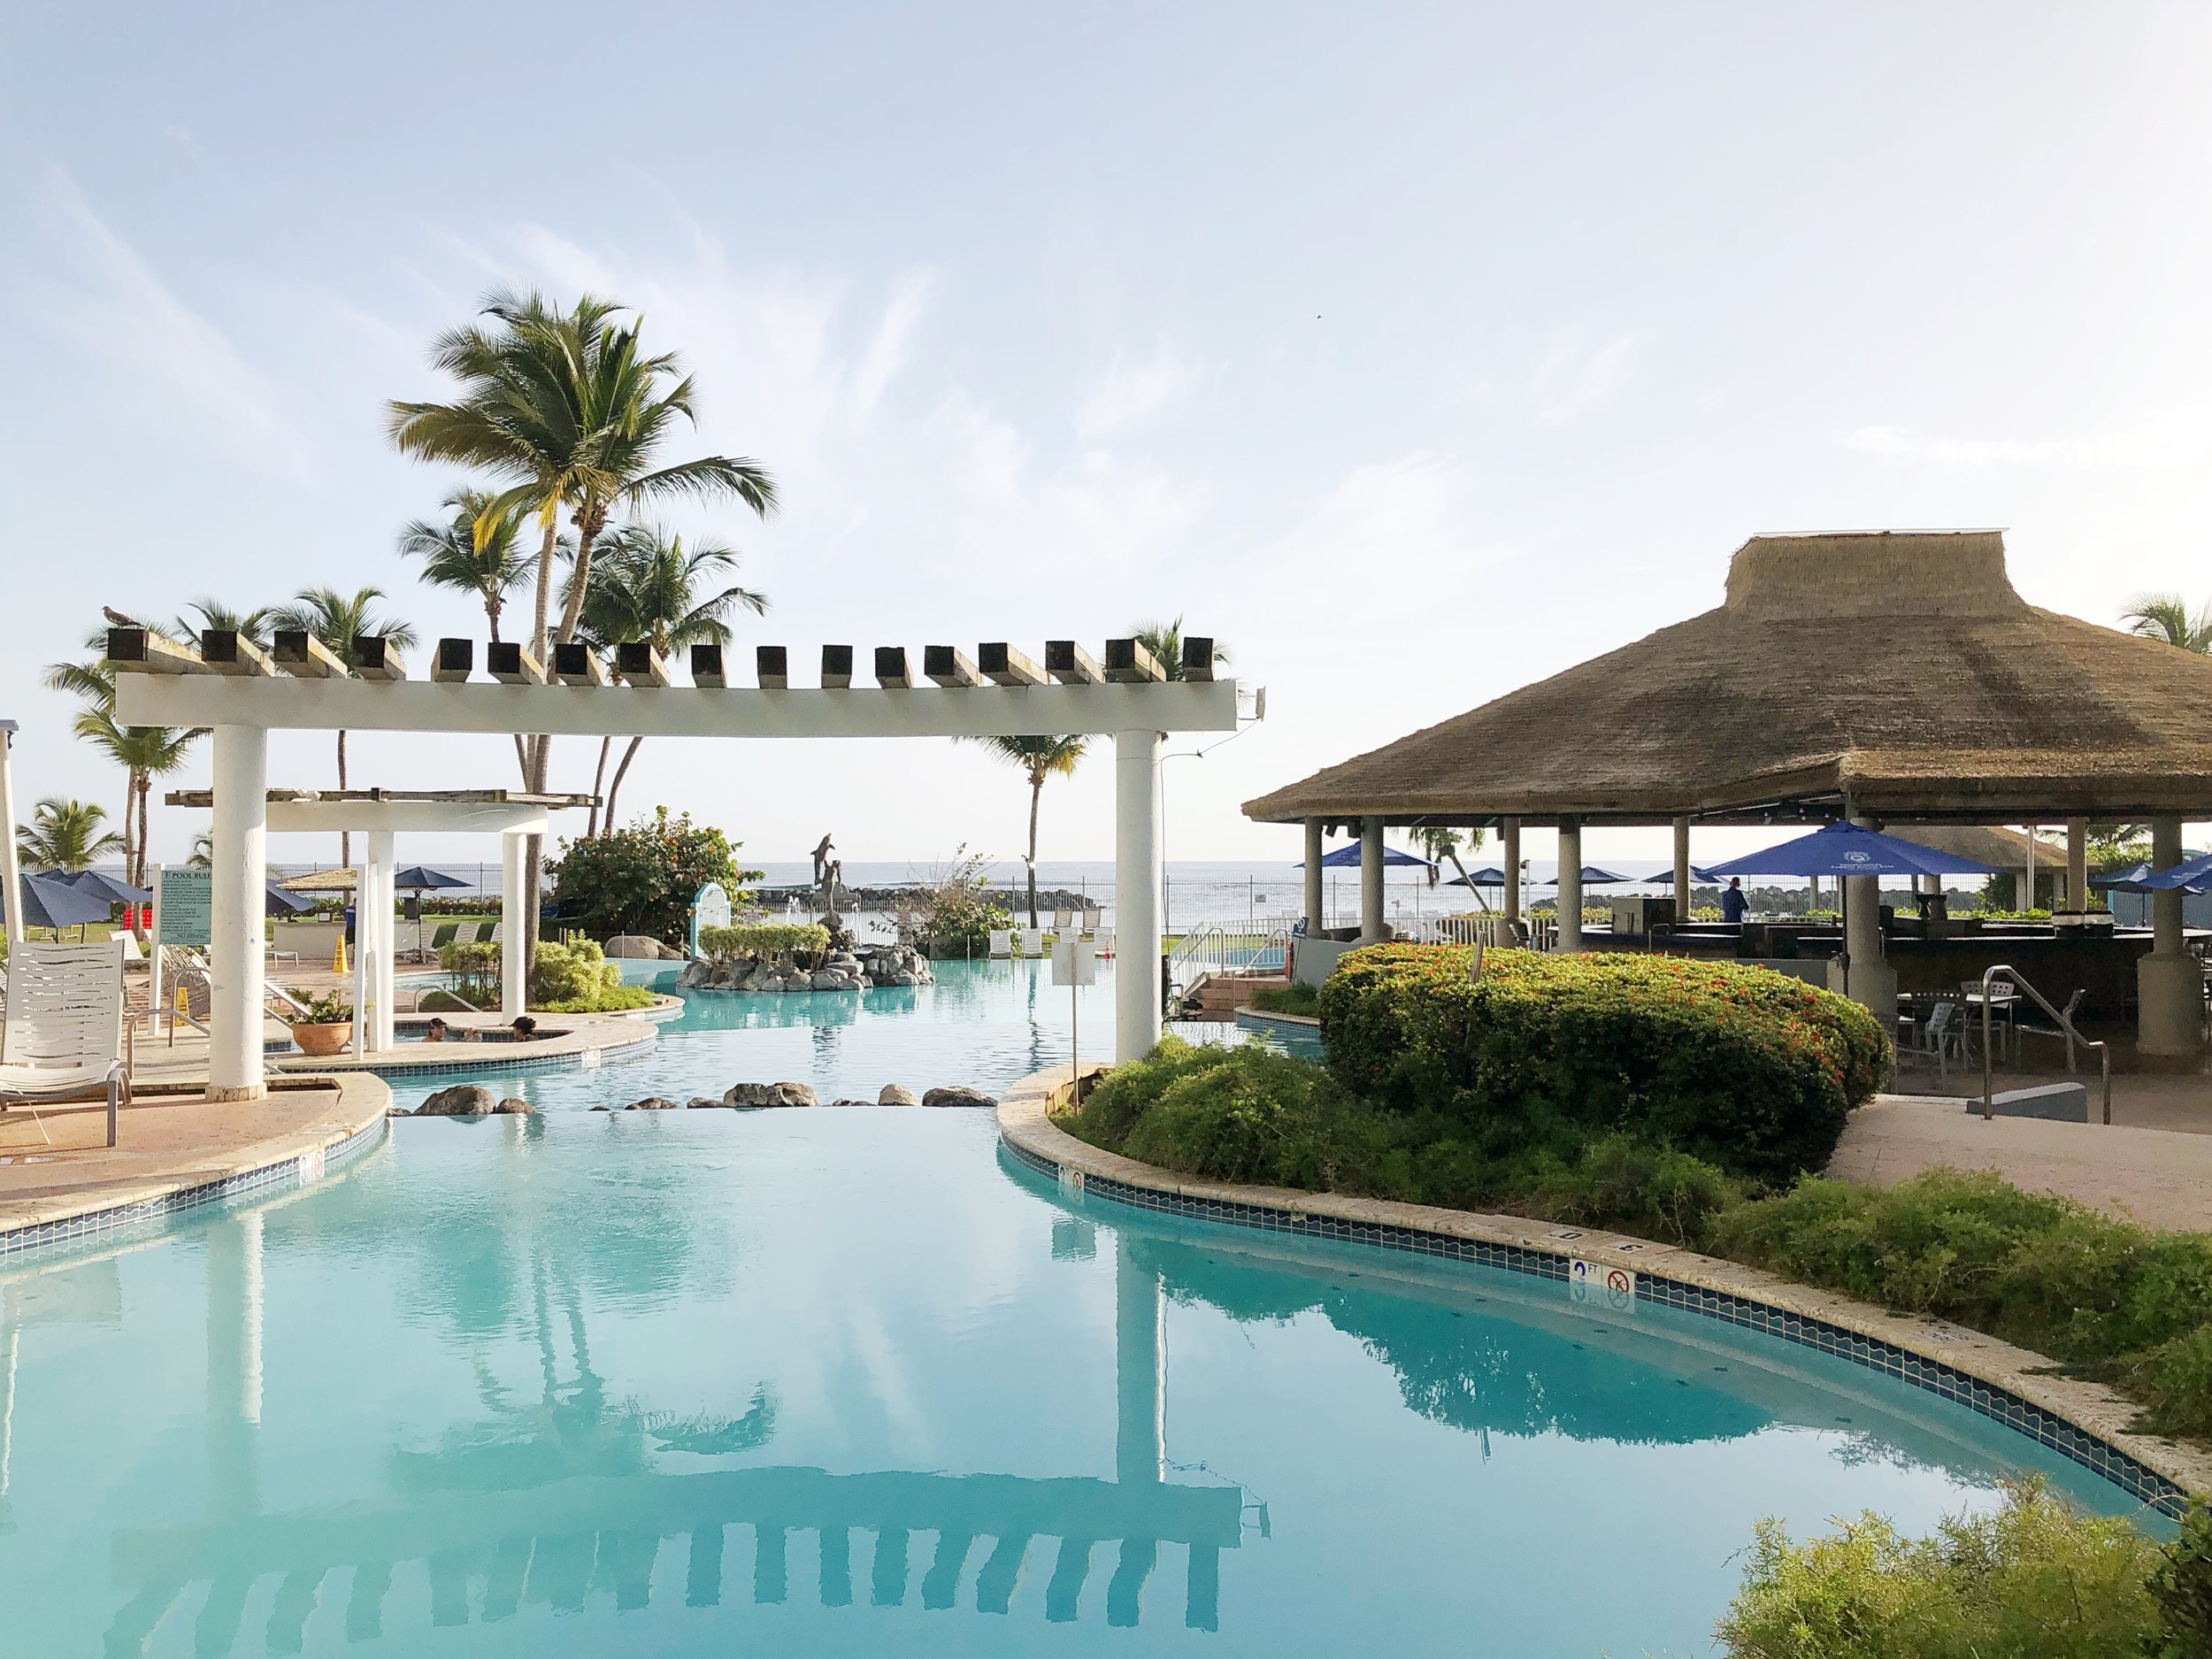 Our pool & beach set up at the Embassy Suites, Dorado Beach Puerto Rico!